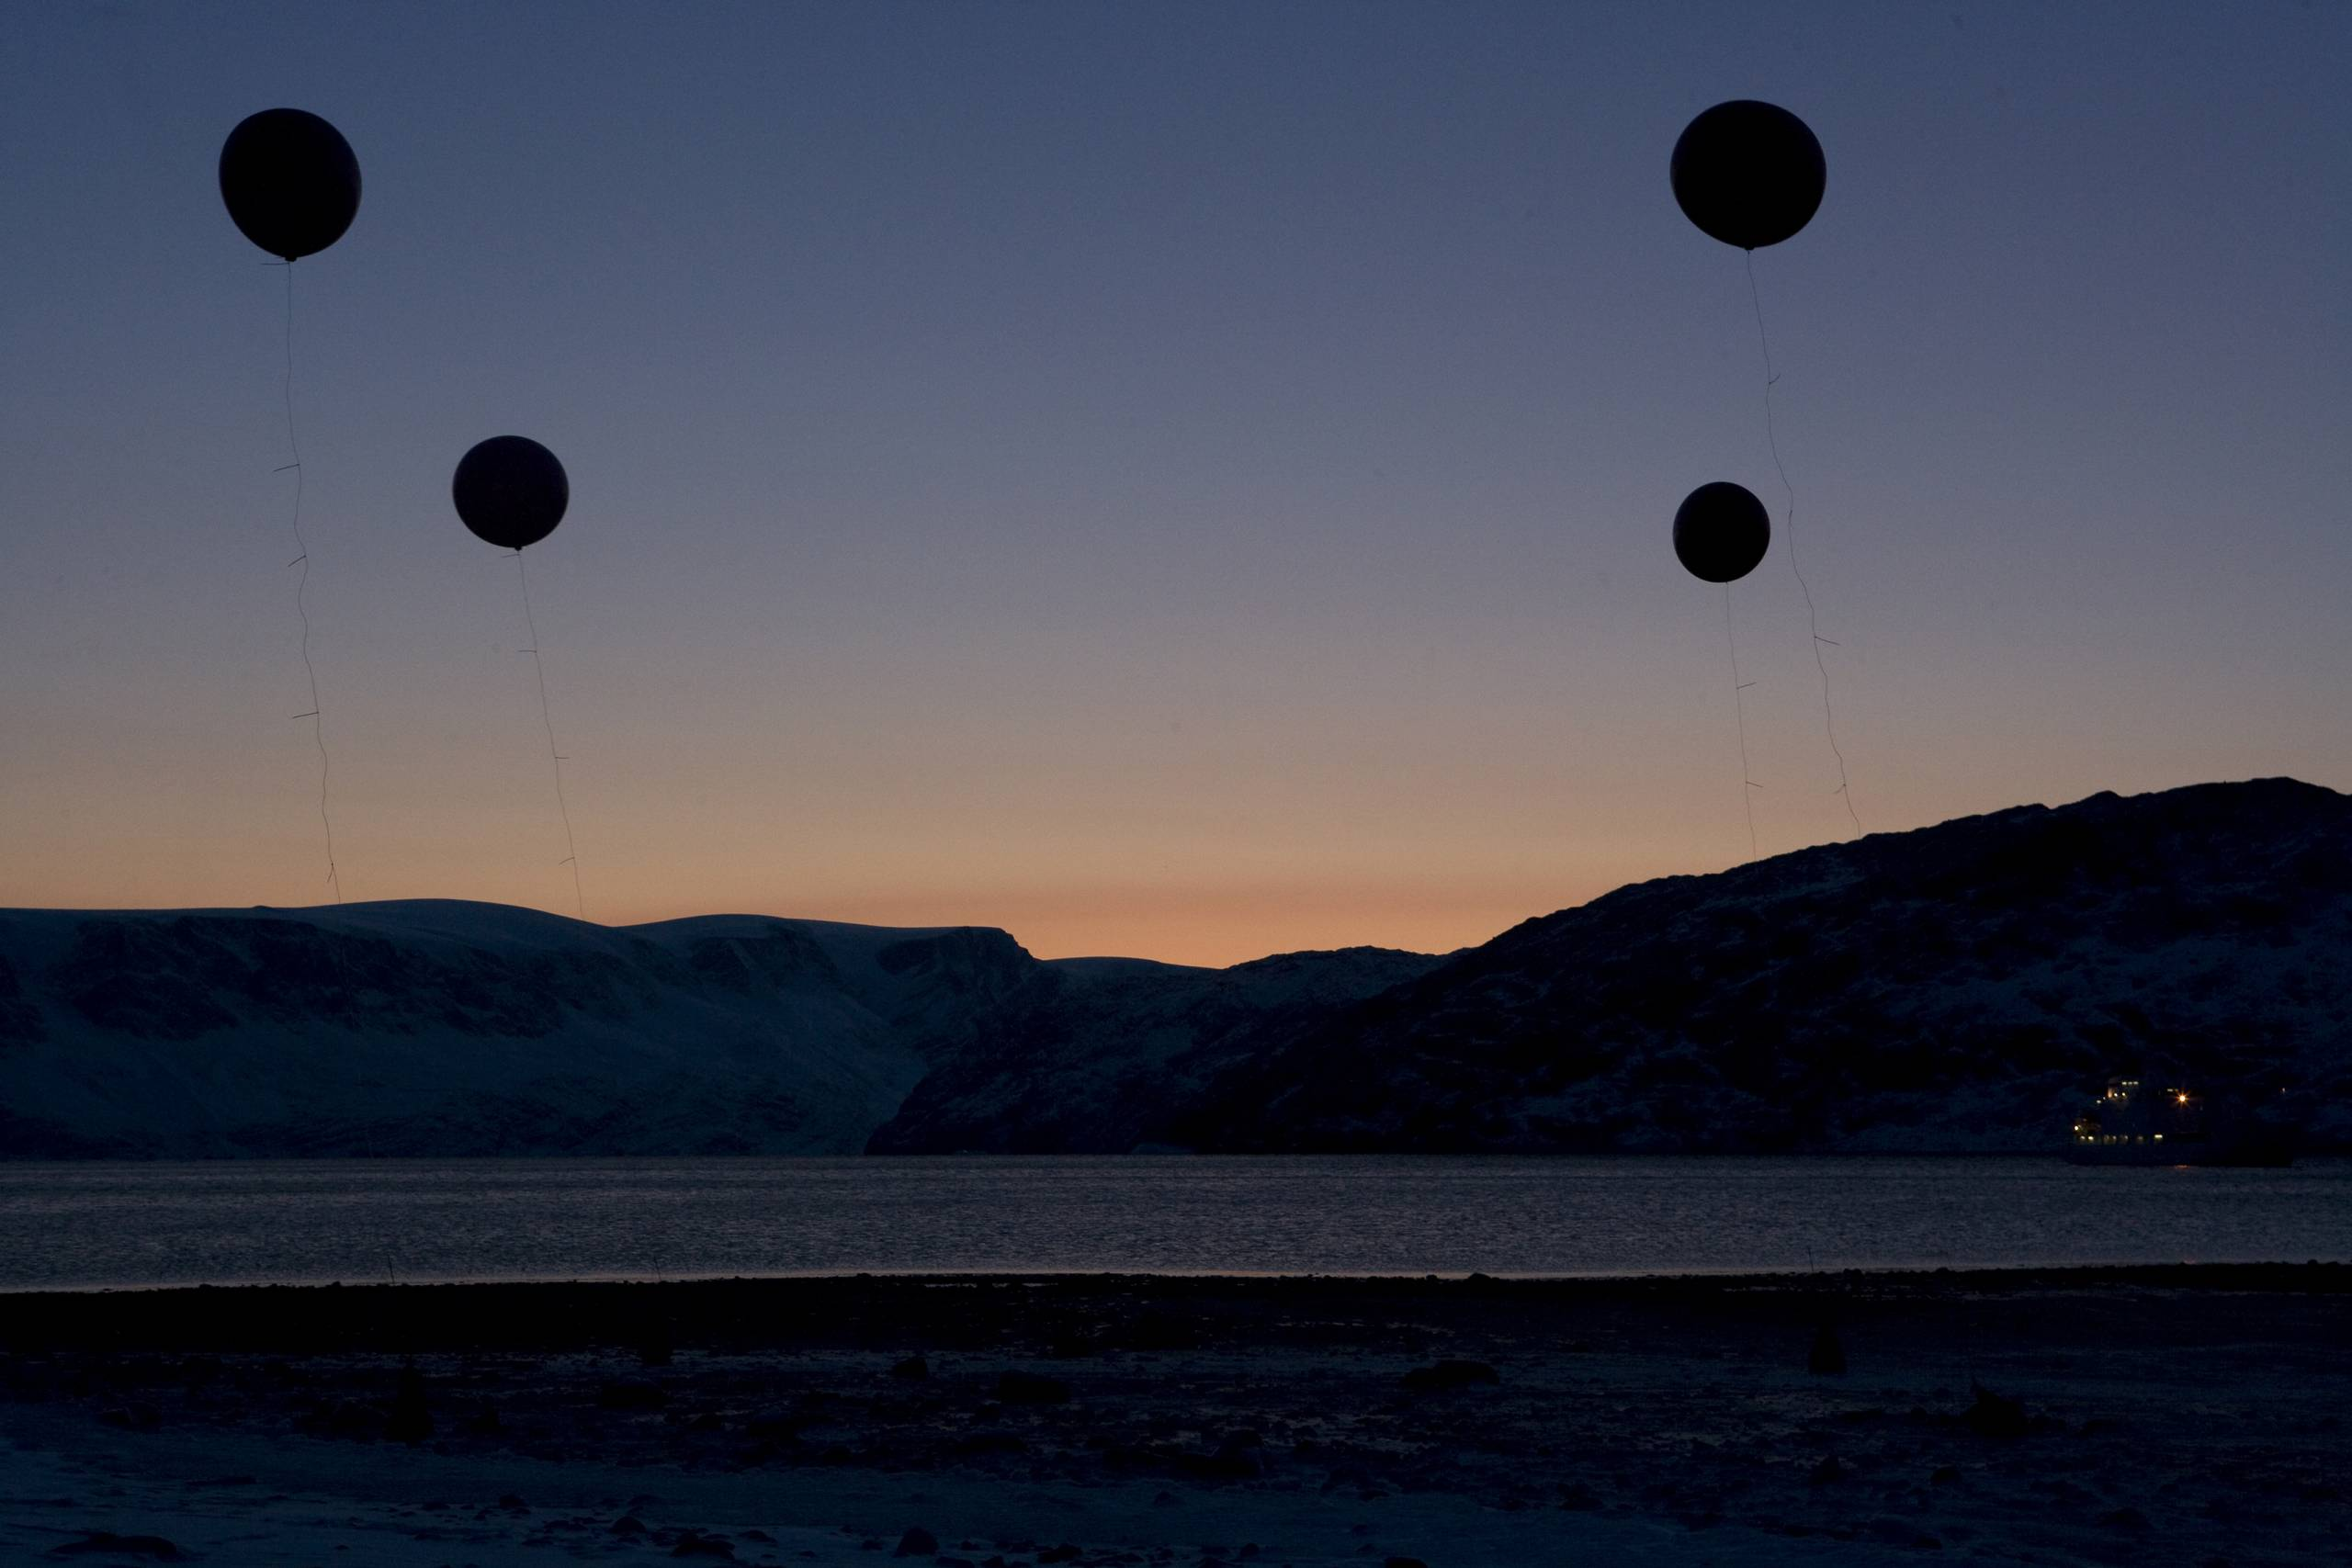 weather balloons in an Arctic landscape